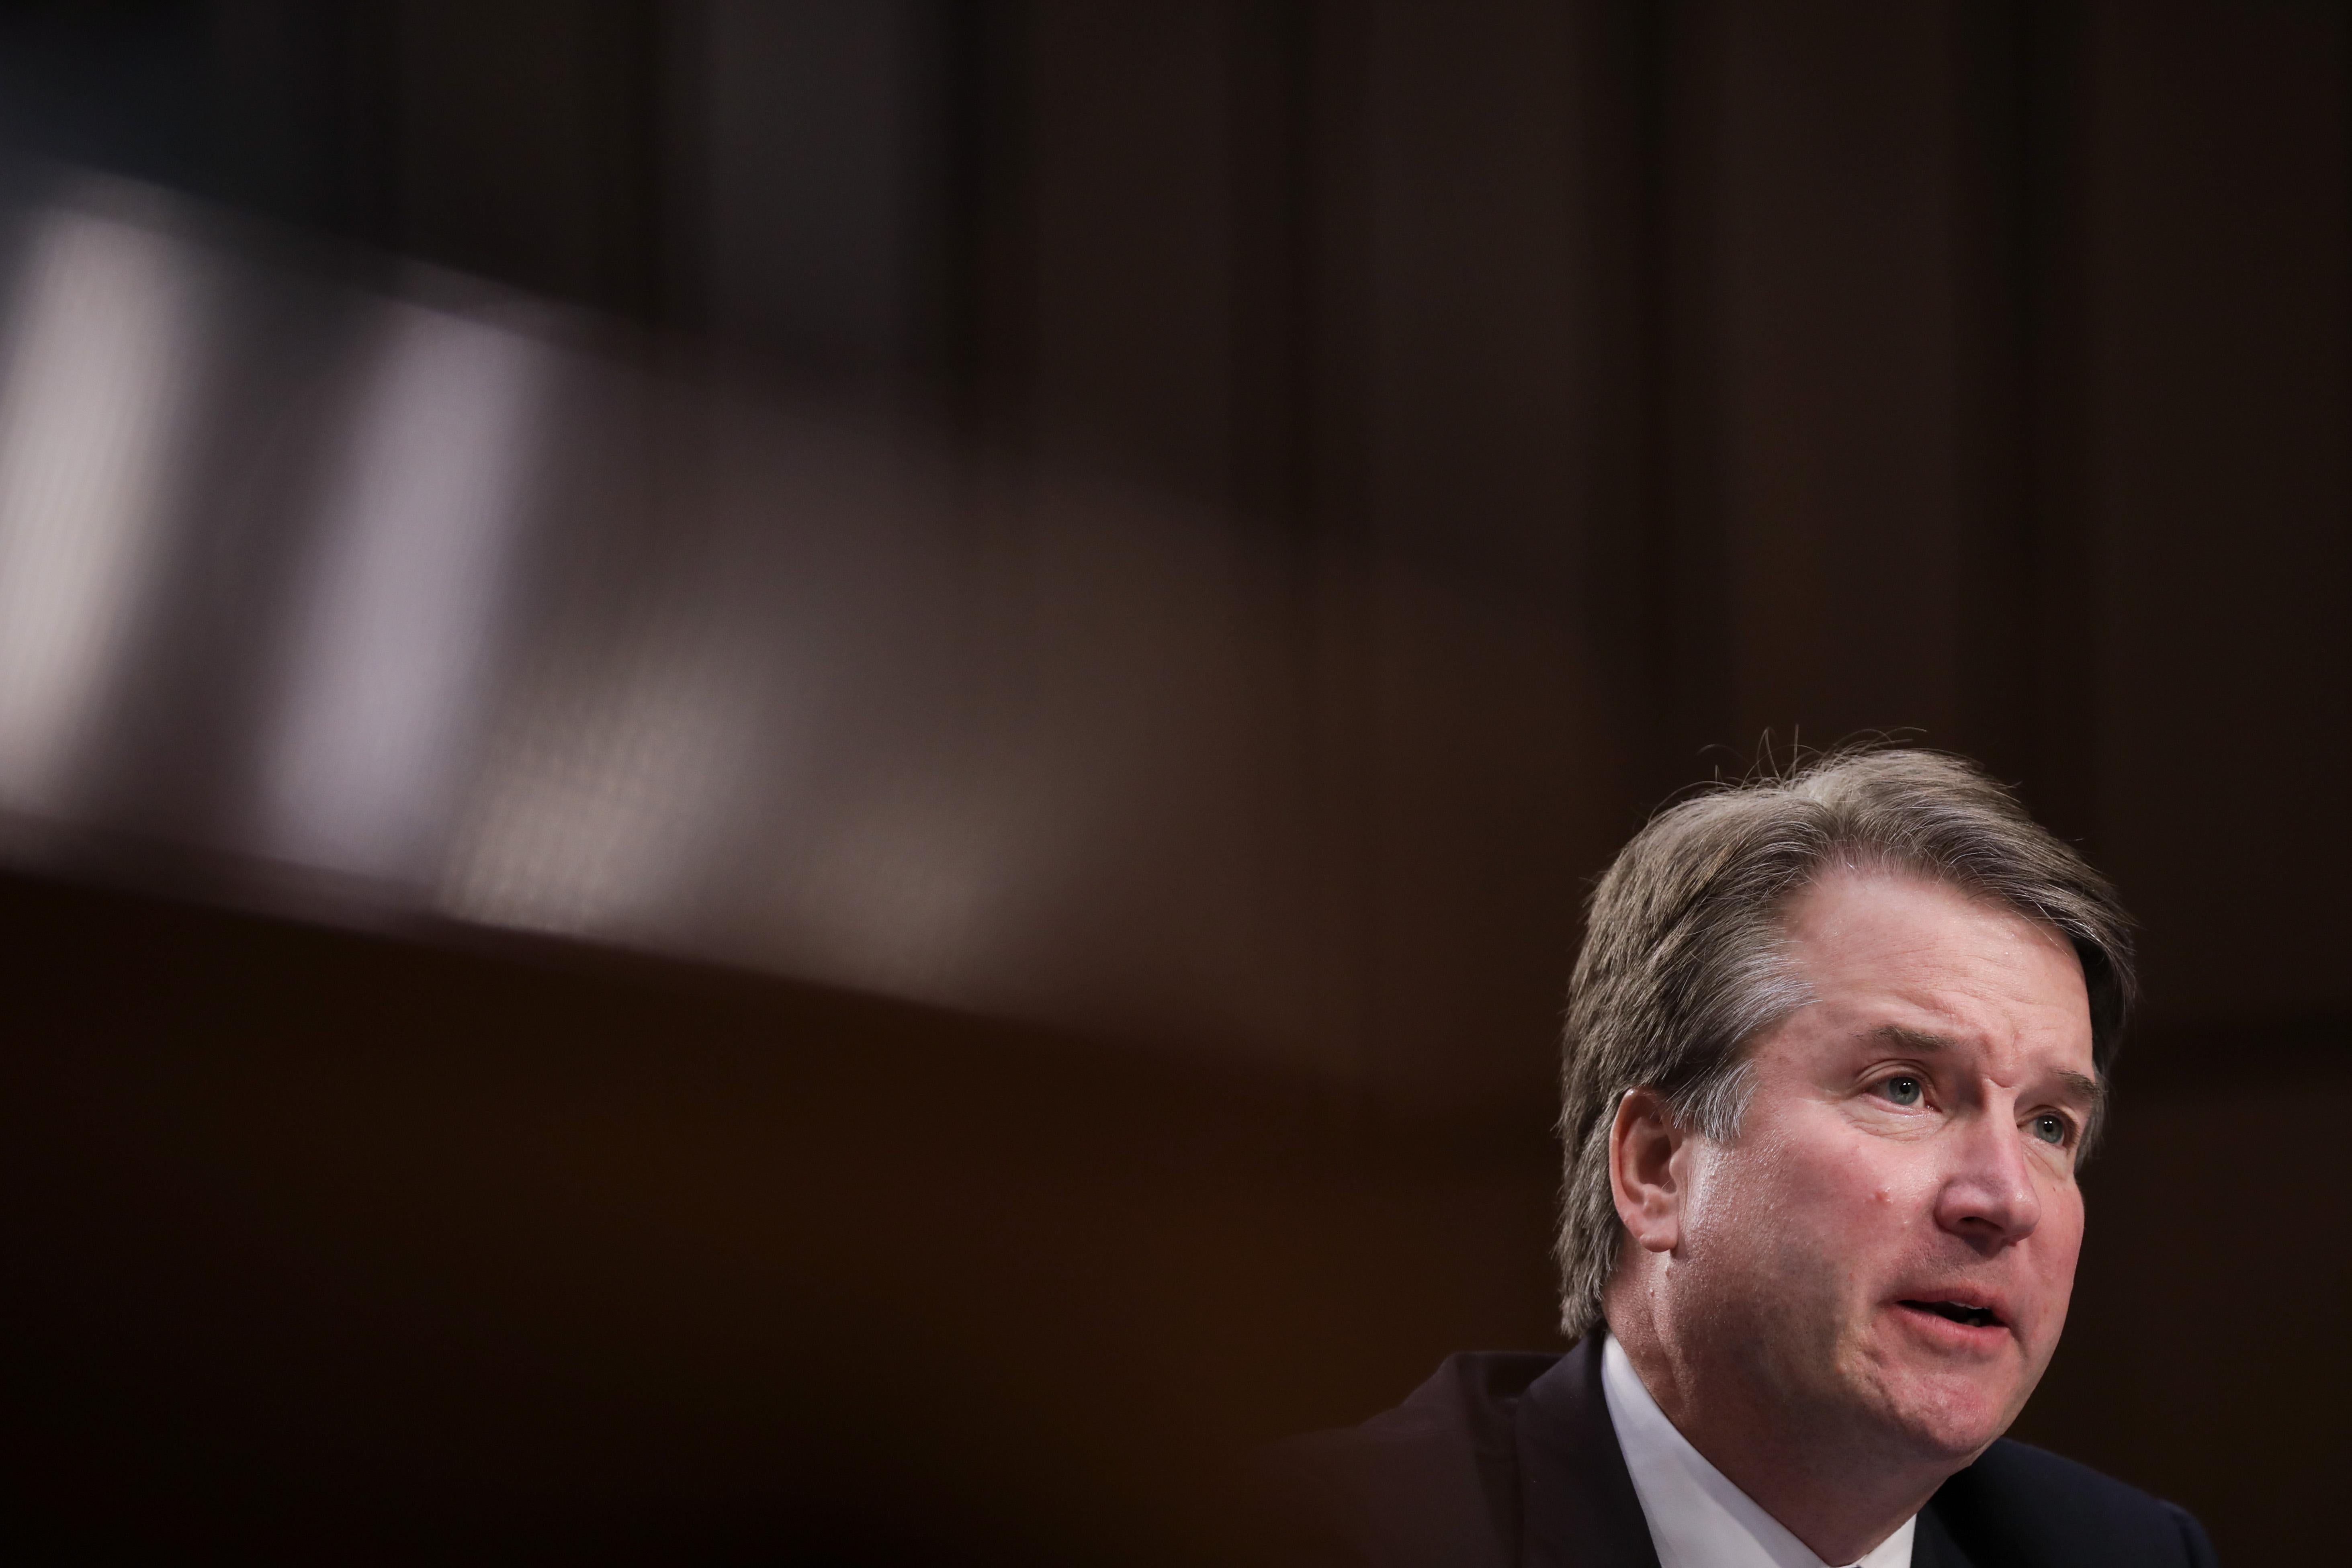 slate.com - David R. Lurie - How Kavanaugh Likely Violated DOJ Policies While Working for Ken Starr